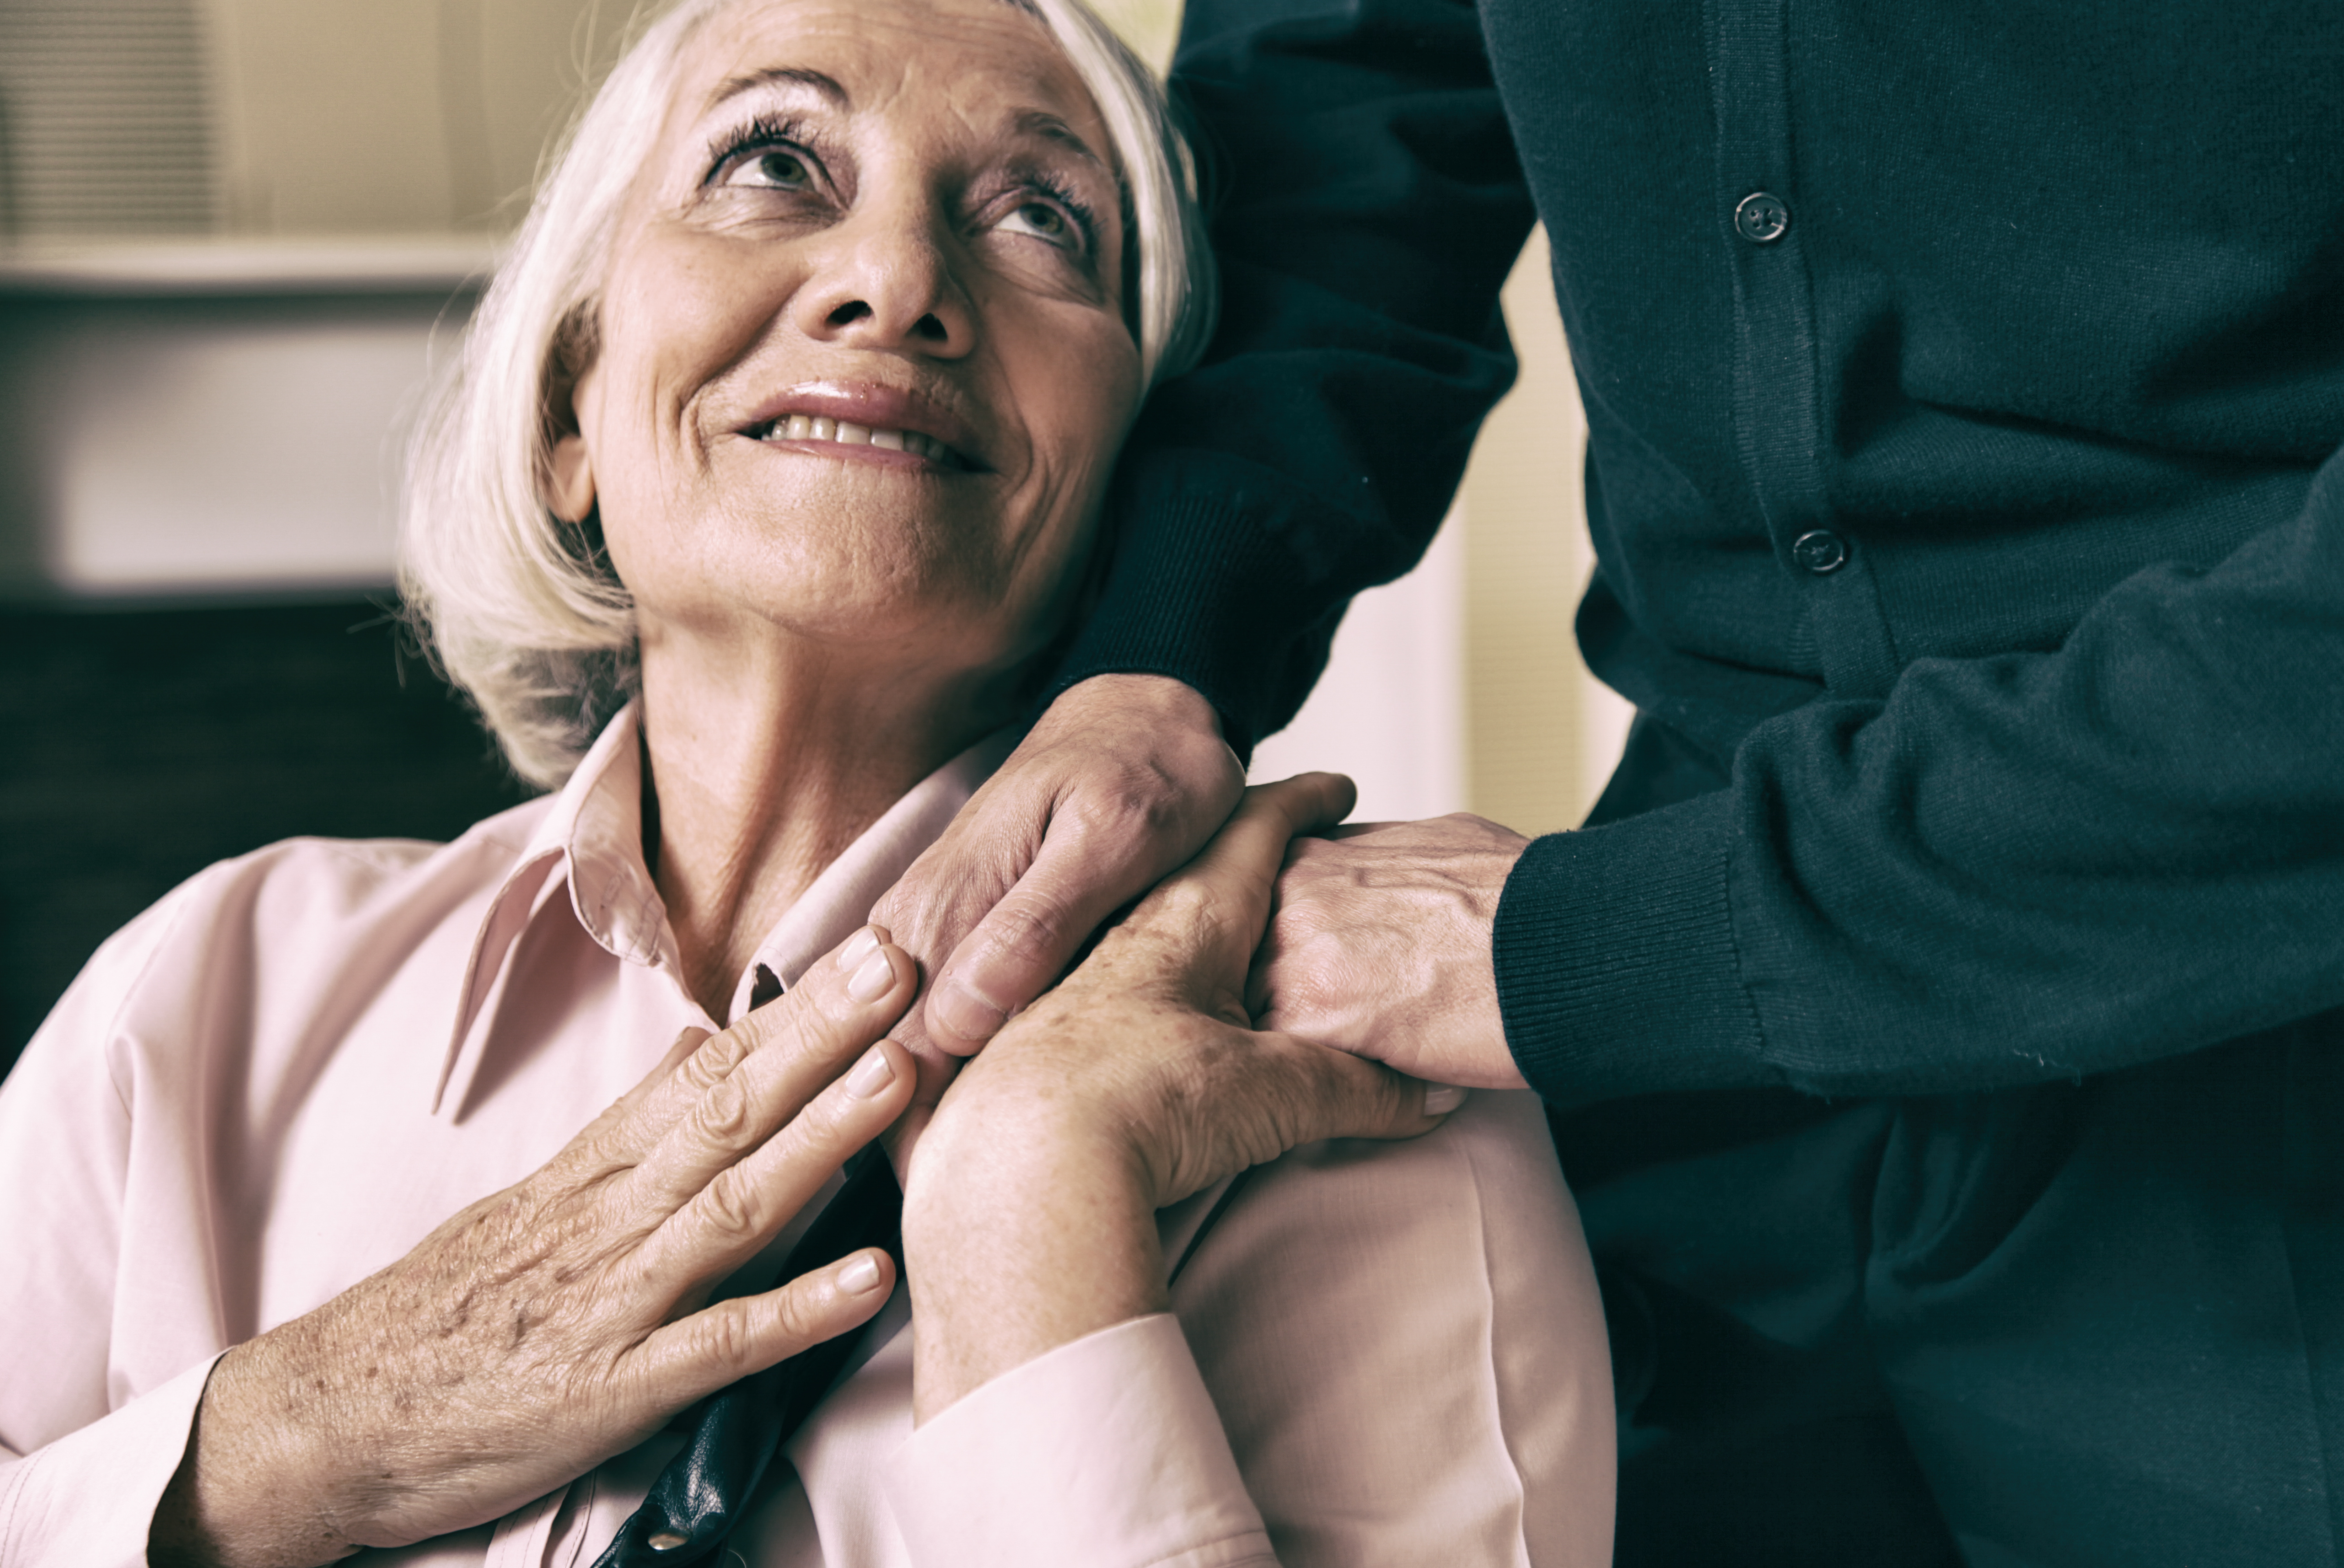 Mutual caregiving is becoming common in older marriages.